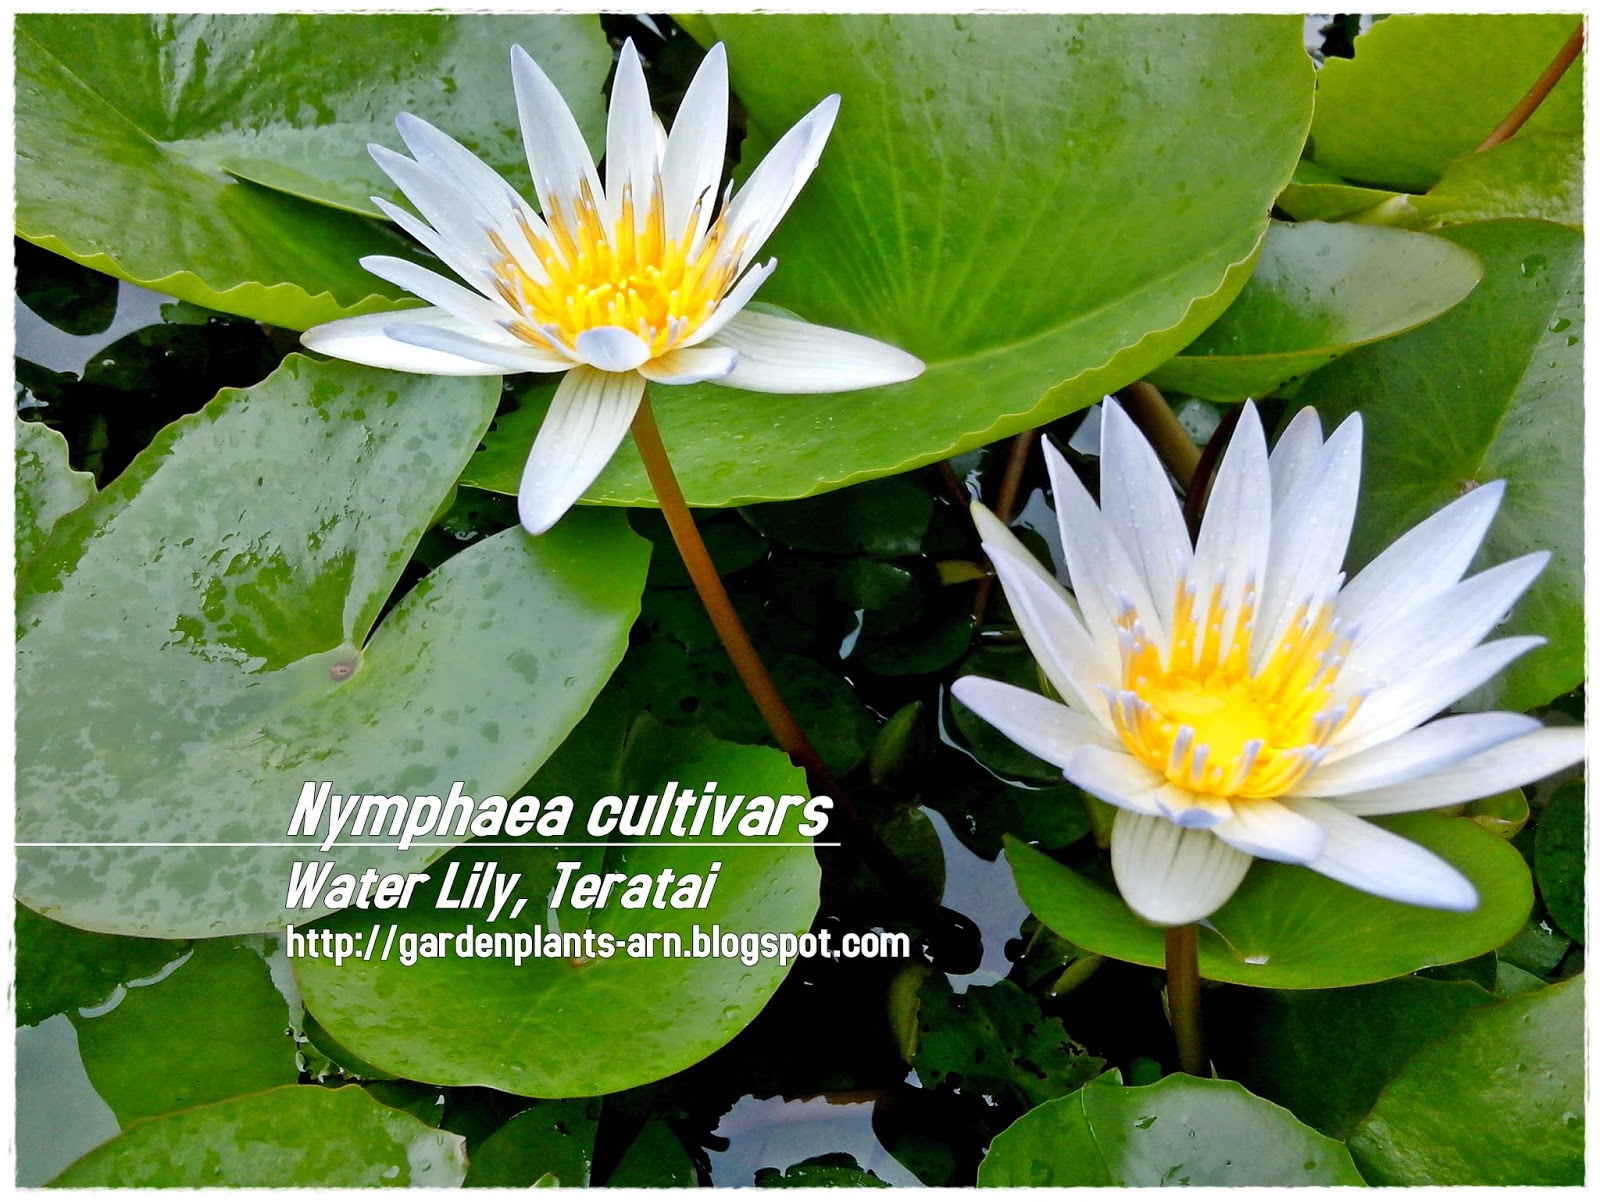 Garden plants cik arn nymphaea cultivars plant habits shrubs plant care requirements requires lots of water prefers full sun plant use characteristics ornamental flowers aquatic plant izmirmasajfo